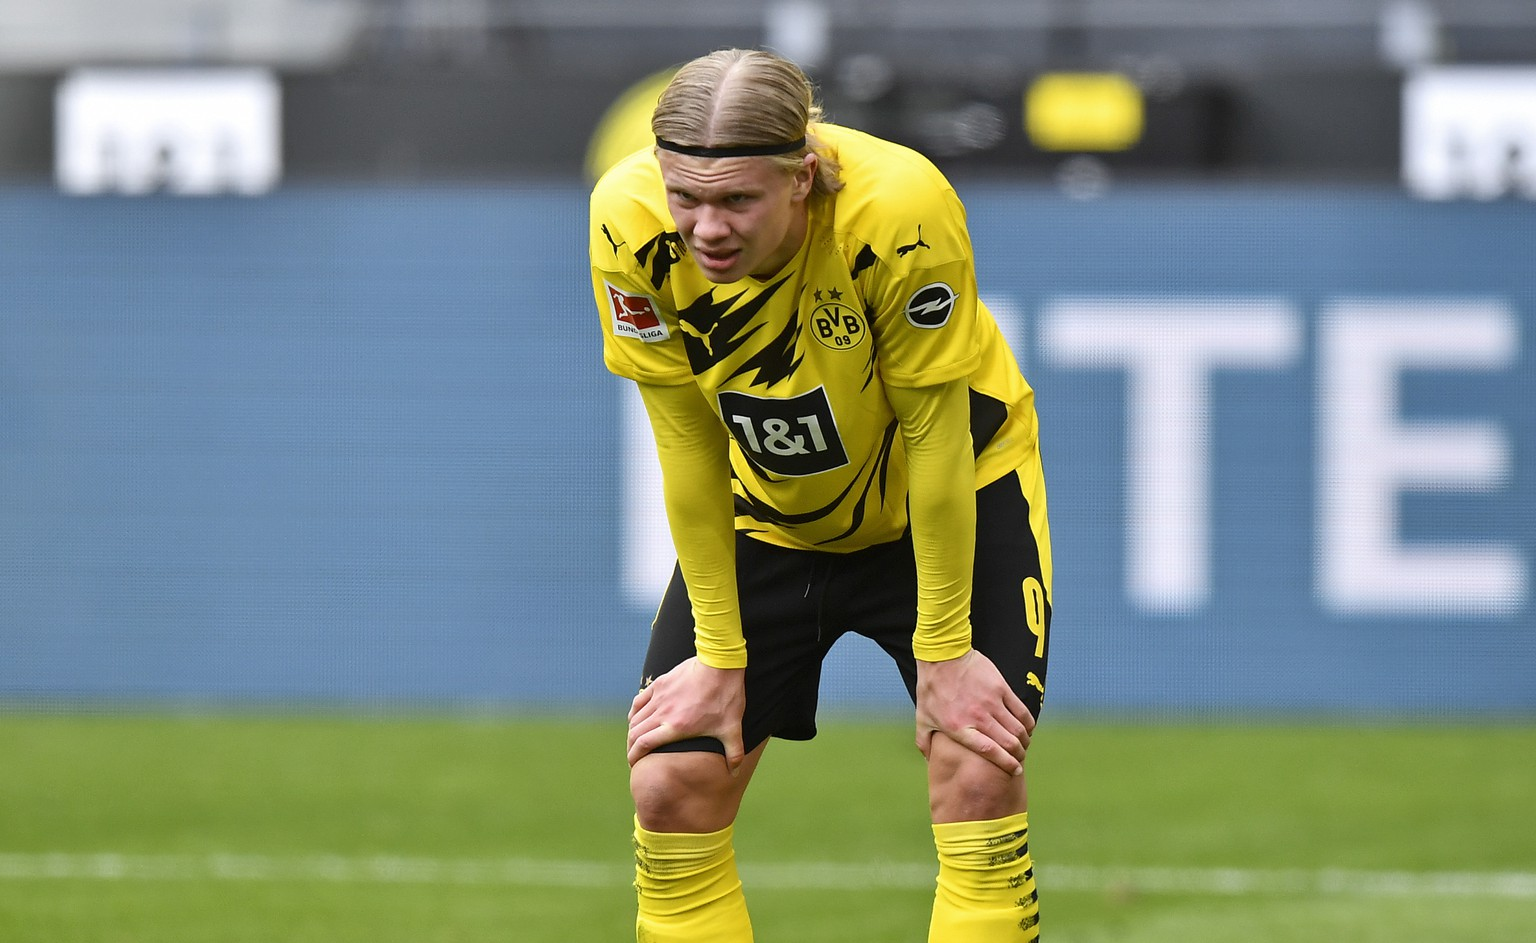 Dortmund's Erling Haaland reacts disappointed during the German Bundesliga soccer match between Borussia Dortmund and Eintracht Frankfurt in Dortmund, Germany, Saturday, April 3, 2021. (AP Photo/Martin Meissner, Pool)